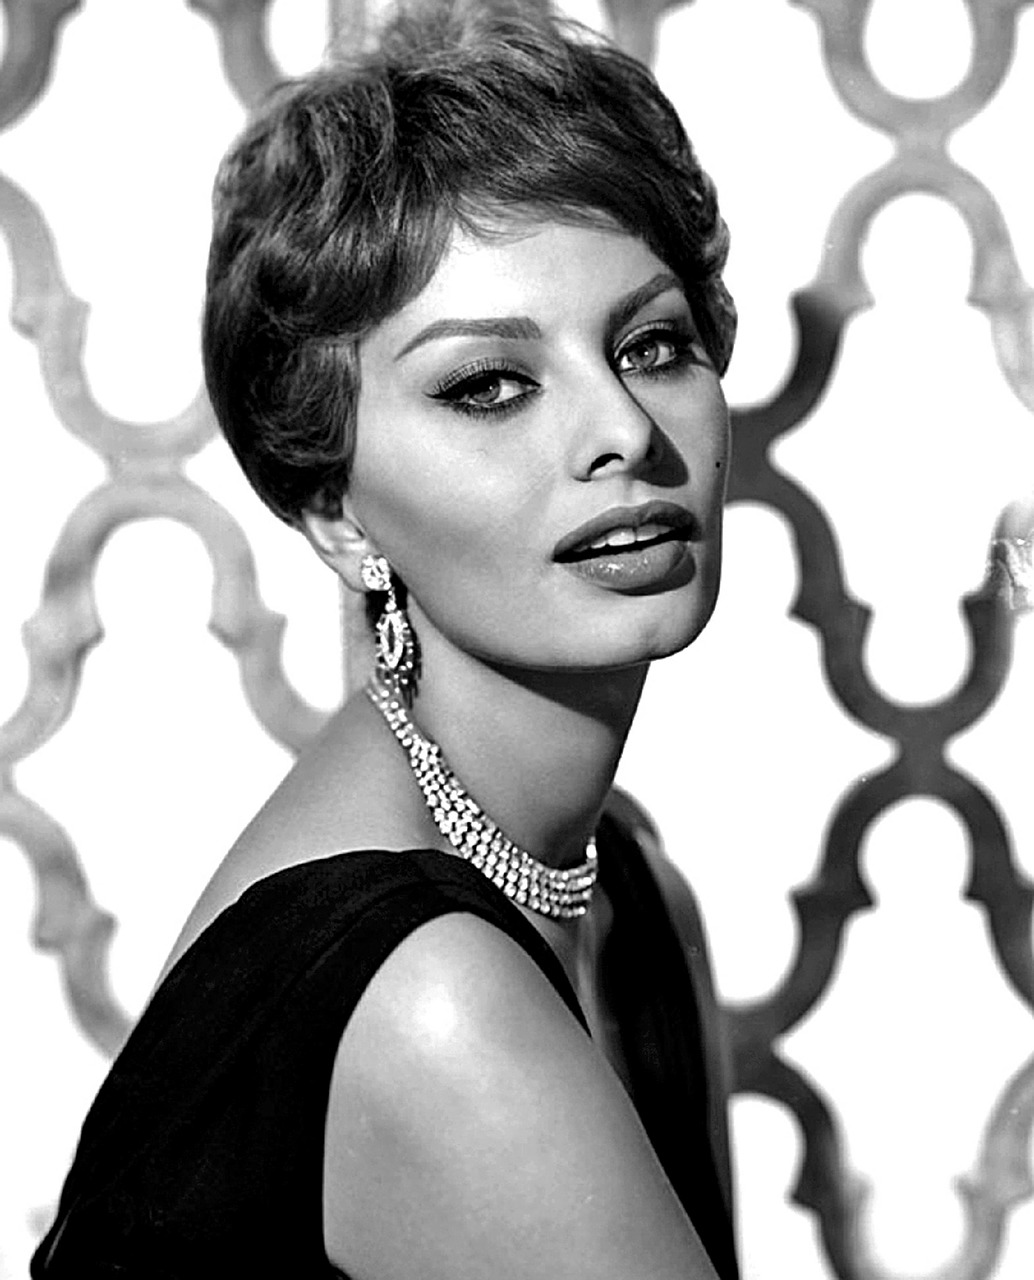 Download free photo of Sophia loren,actress,vintage,movies,motion pictures  - from needpix.com